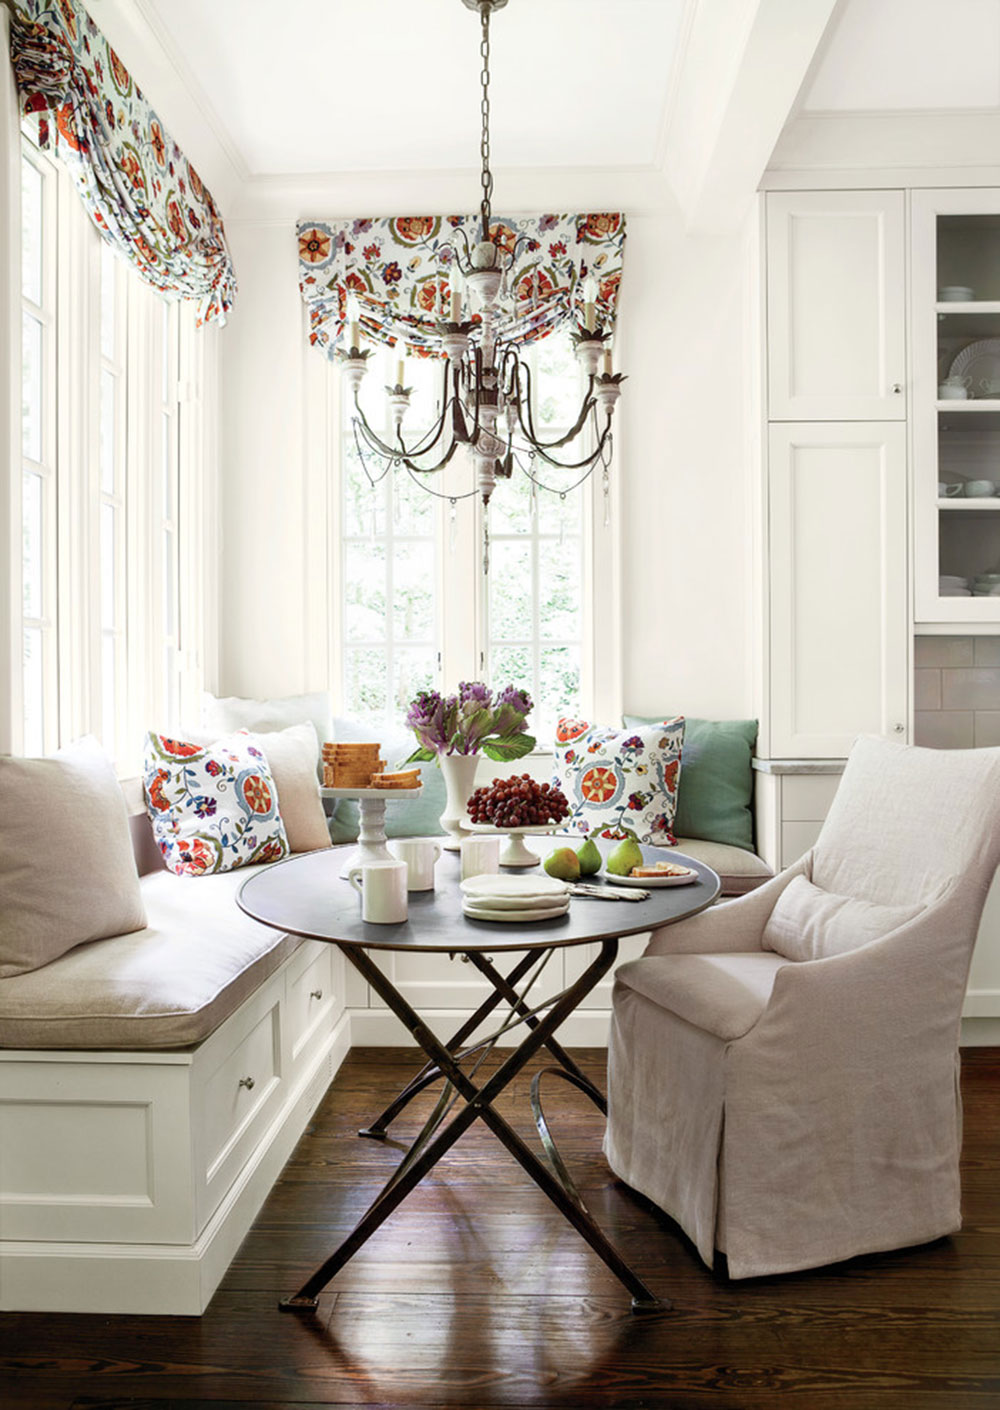 Breakfast-Nook-Design-Ideas-for-Awesome-Mornings8 Breakfast Nook Design-Ideas for Awesome Mornings